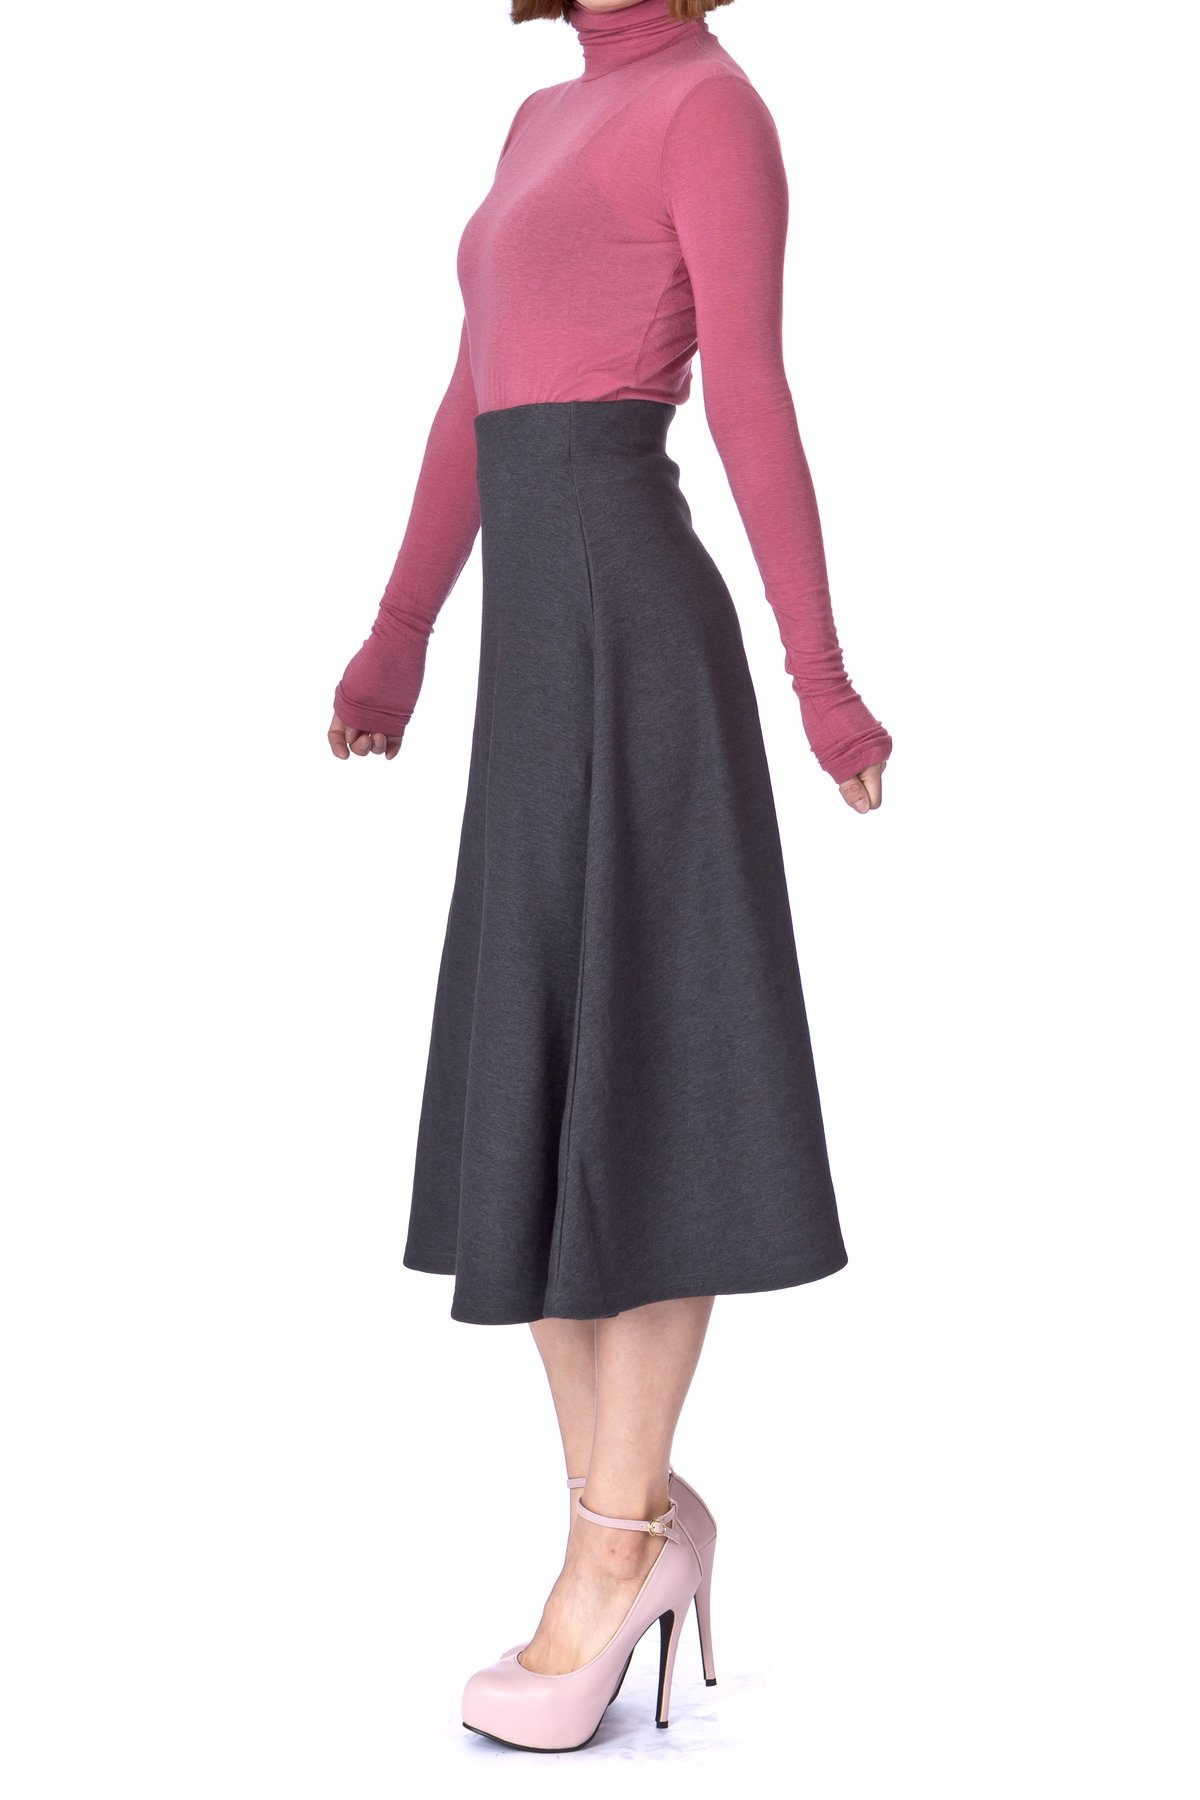 Elastic Waist A line Flared Long Skirt Charcoal 02